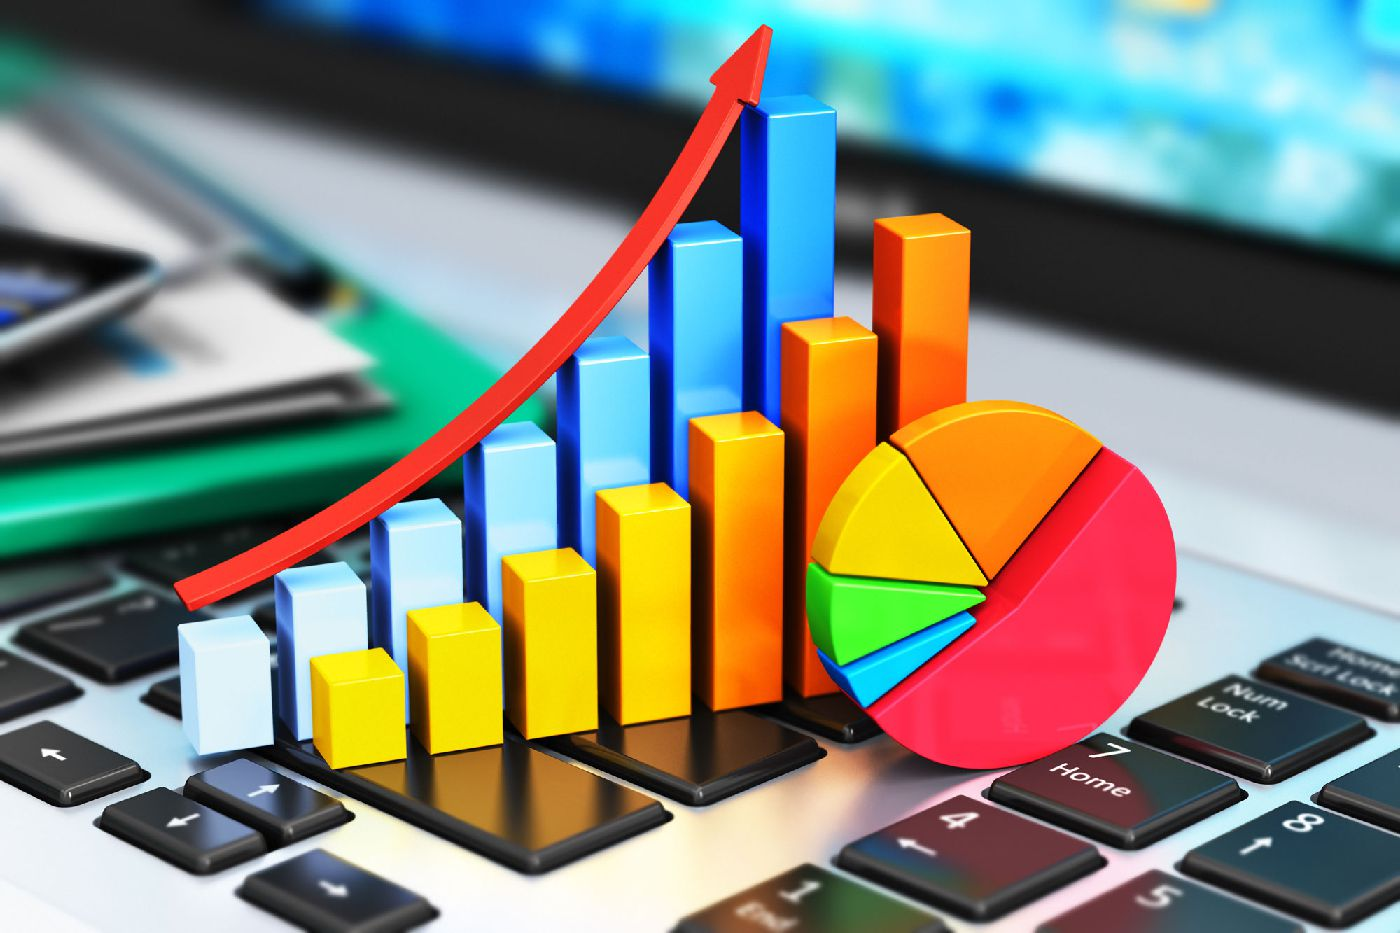 financial statistics A compilation of banking and financial indicators, including the bank of canada's assets and liabilities, credit and monetary aggregates, chartered banks data and selected financial market statistics.